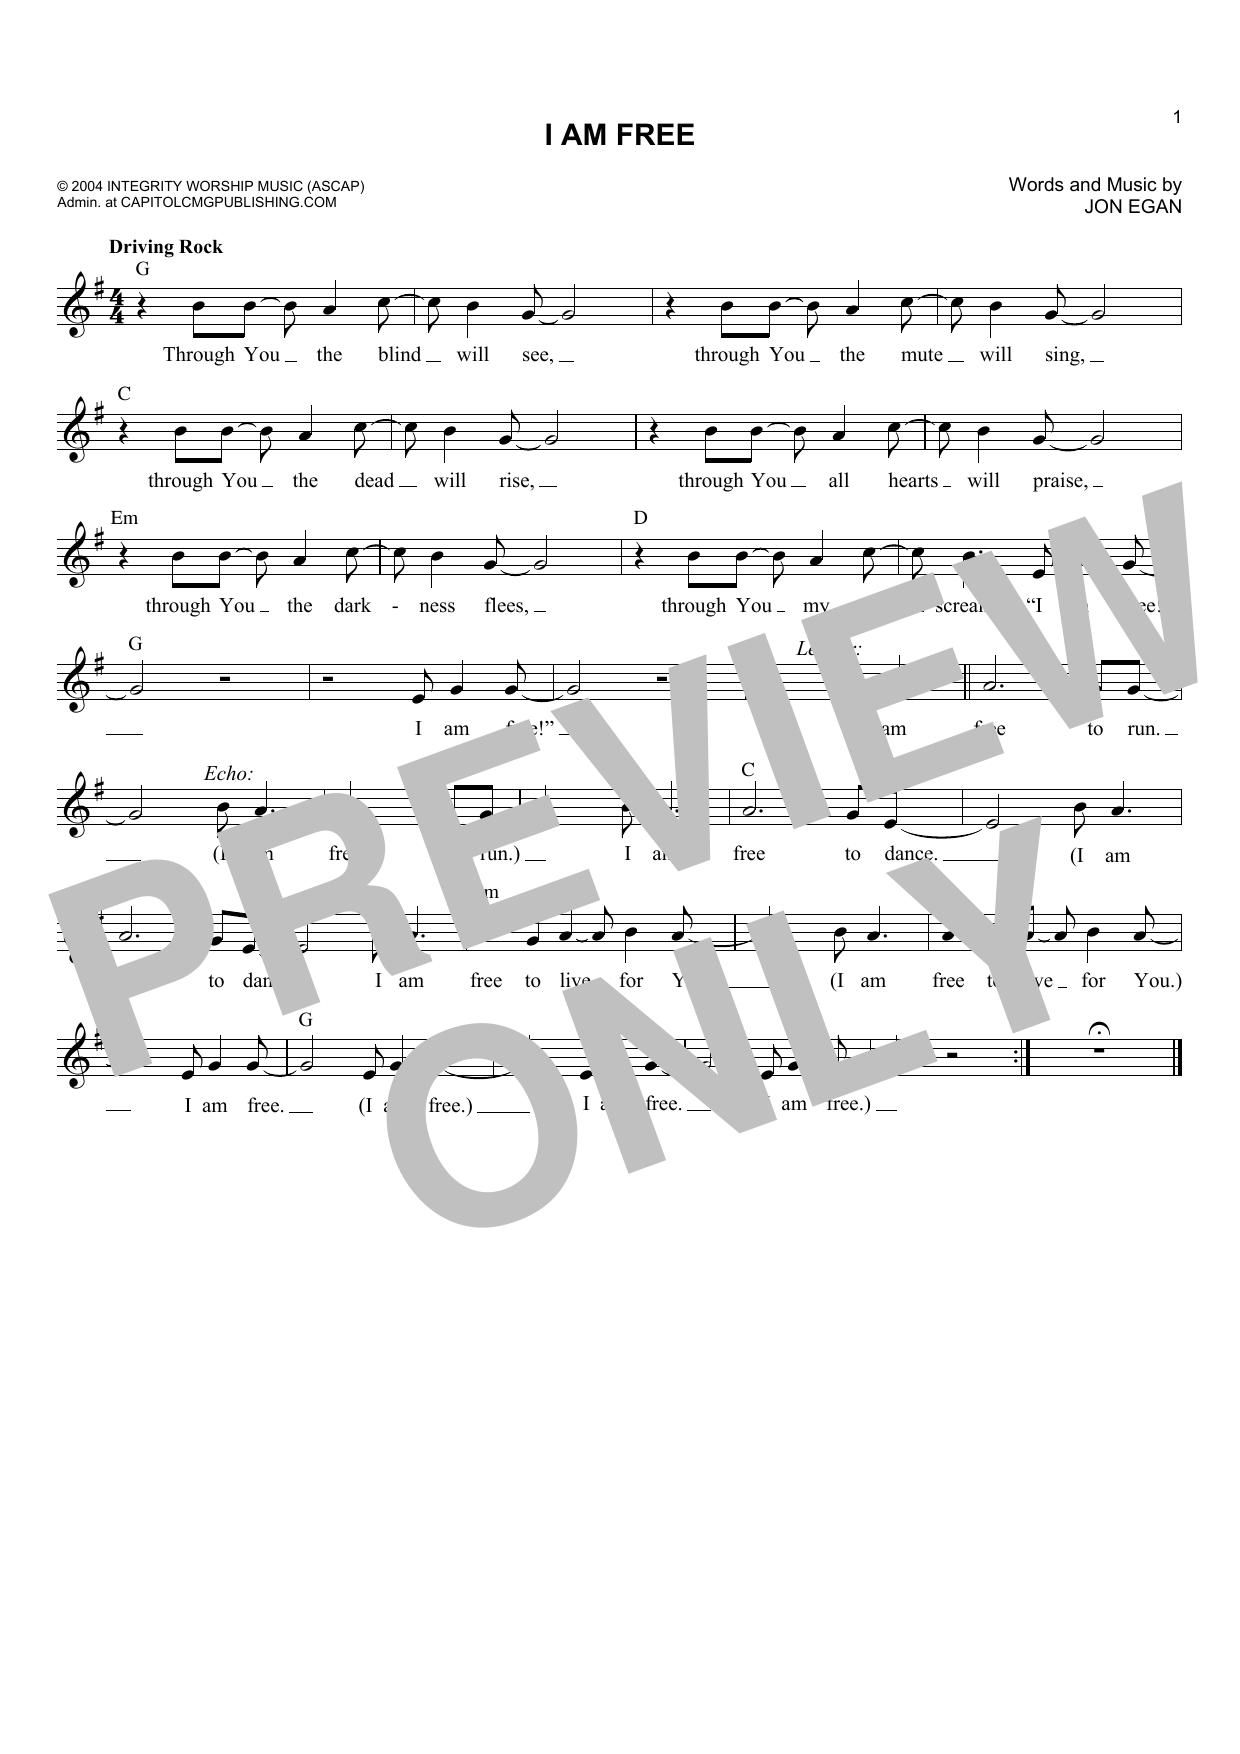 Jon Egan I Am Free sheet music notes and chords. Download Printable PDF.